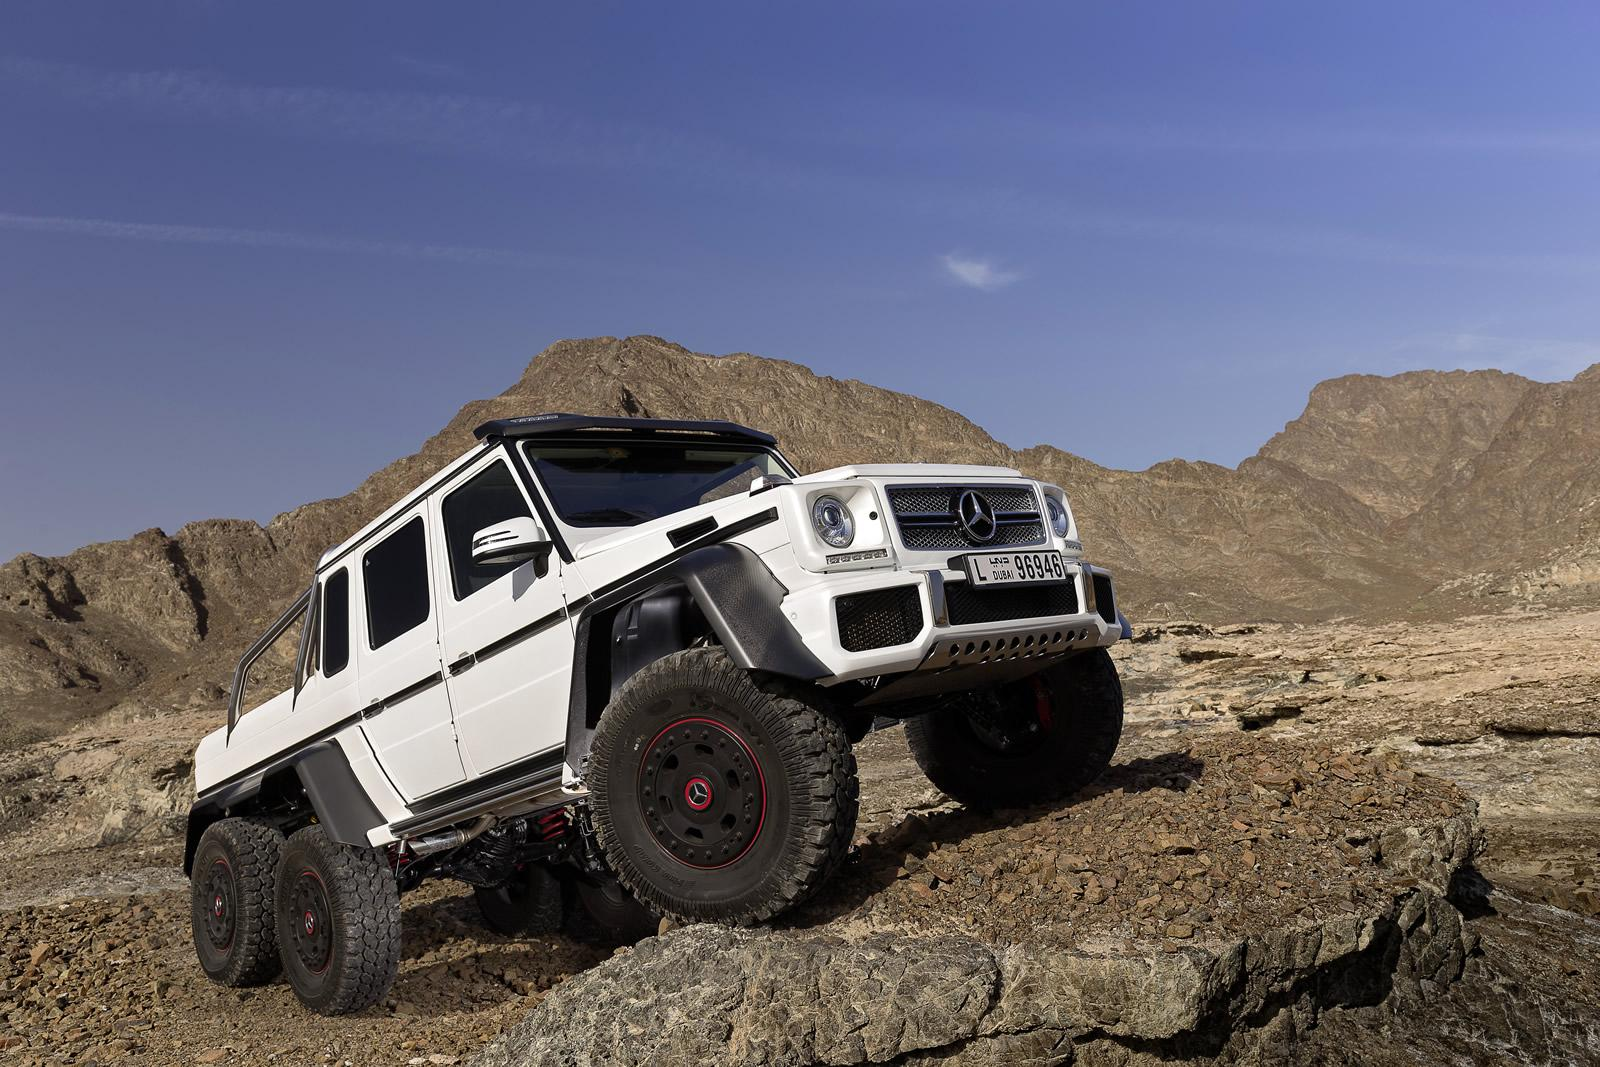 6x6 mercedes benz g63 amg pics aplenty autoevolution for Mercedes benz g 63